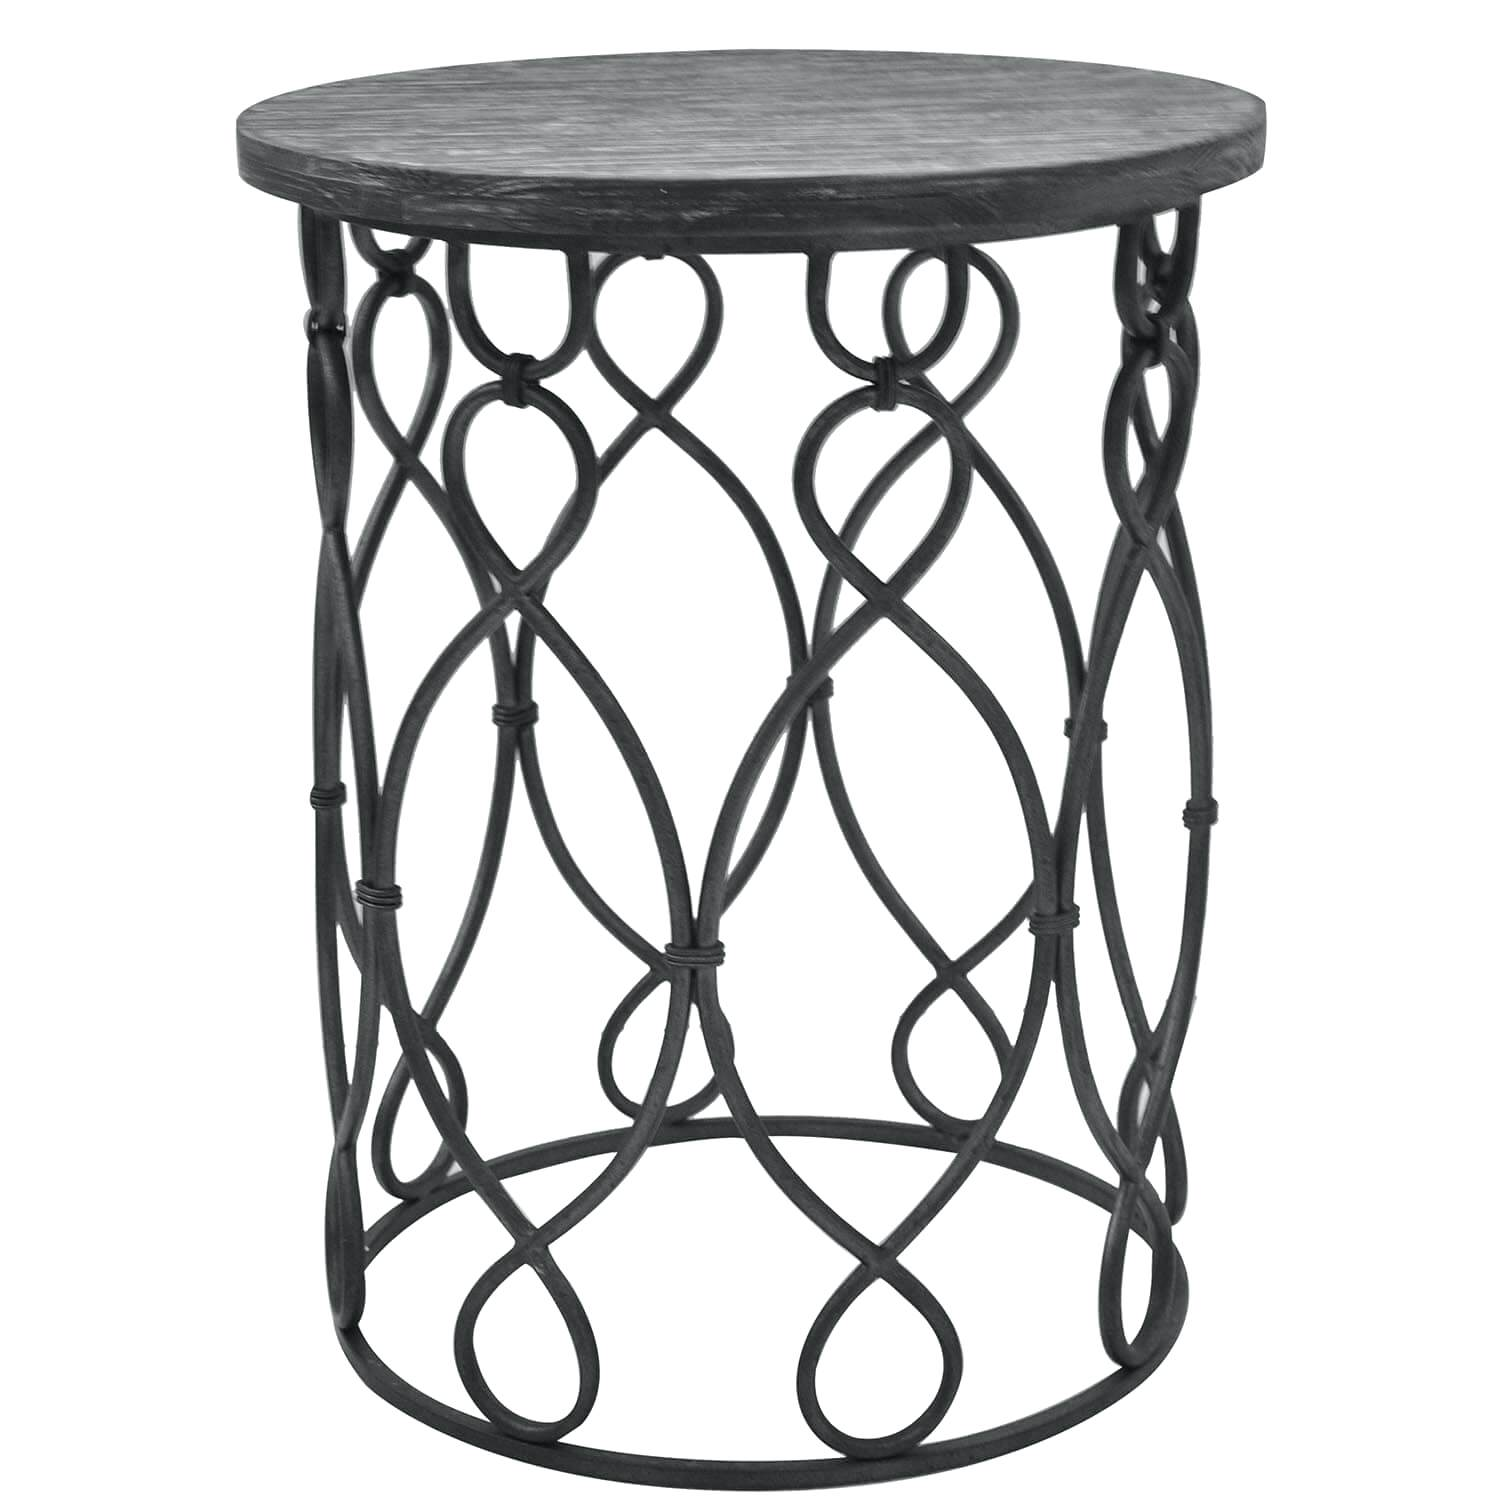 metal accent table monarch specialties chrome grand junction wood and outdoor woven thresholdtm threshold target end tables white narrow sofa battery operated led floor lamps